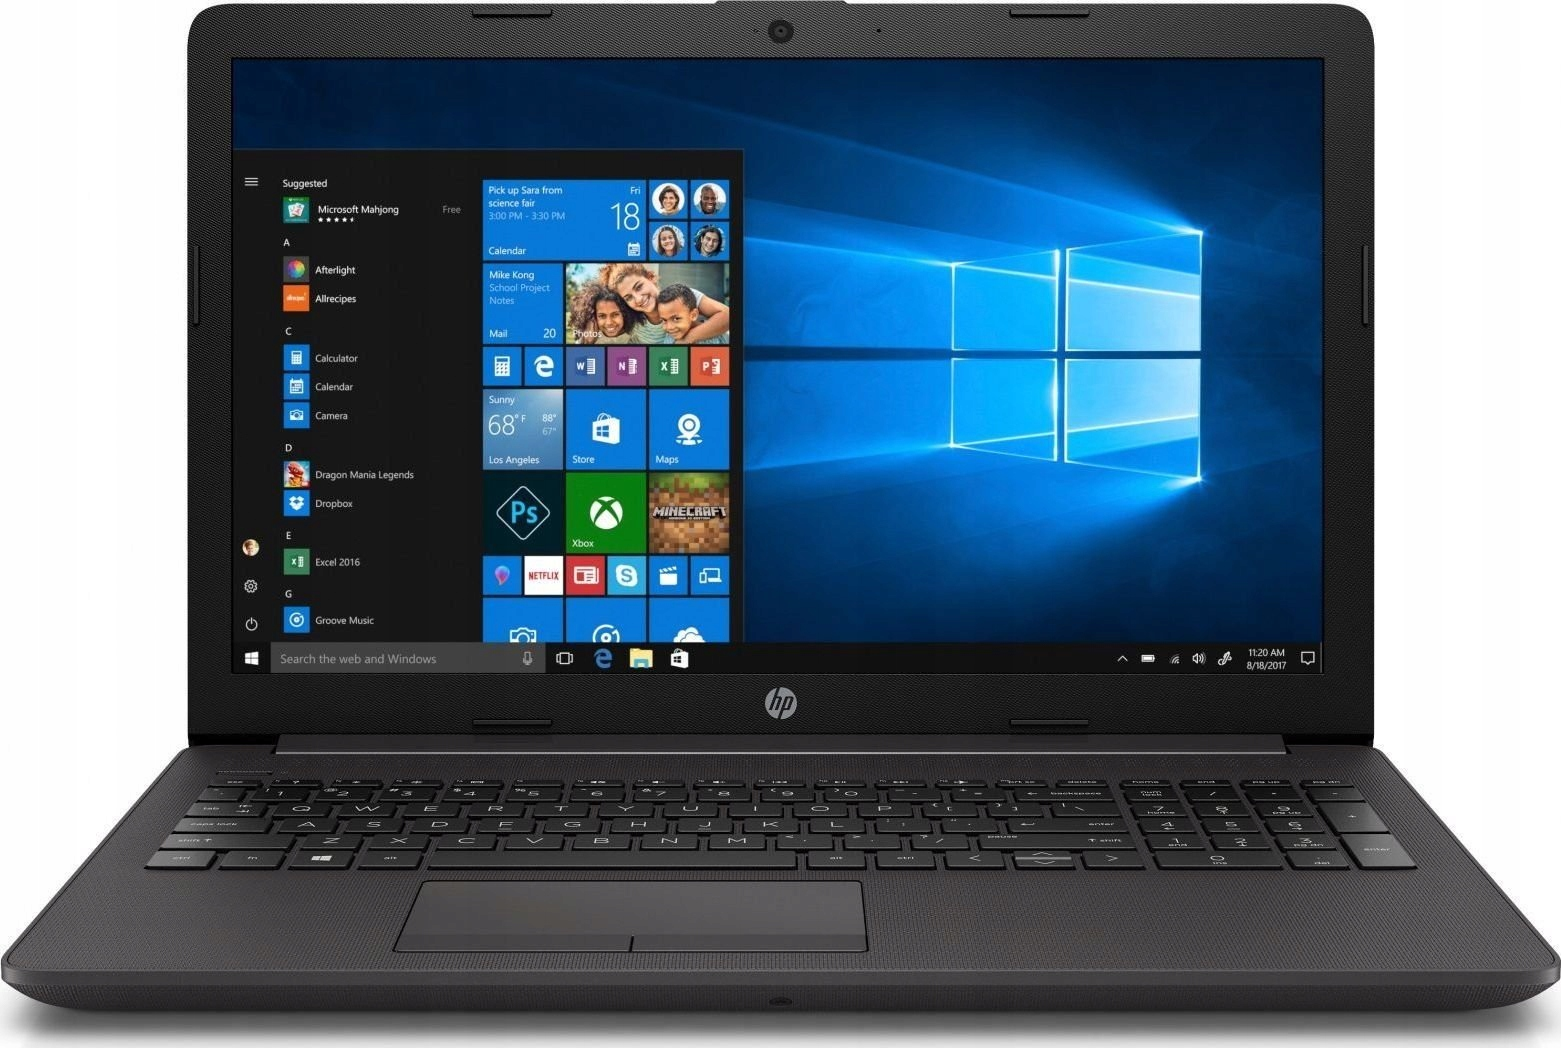 Komputer Laptop Hp Ryzen 3500U Ssd 1TB 8GB DDR4